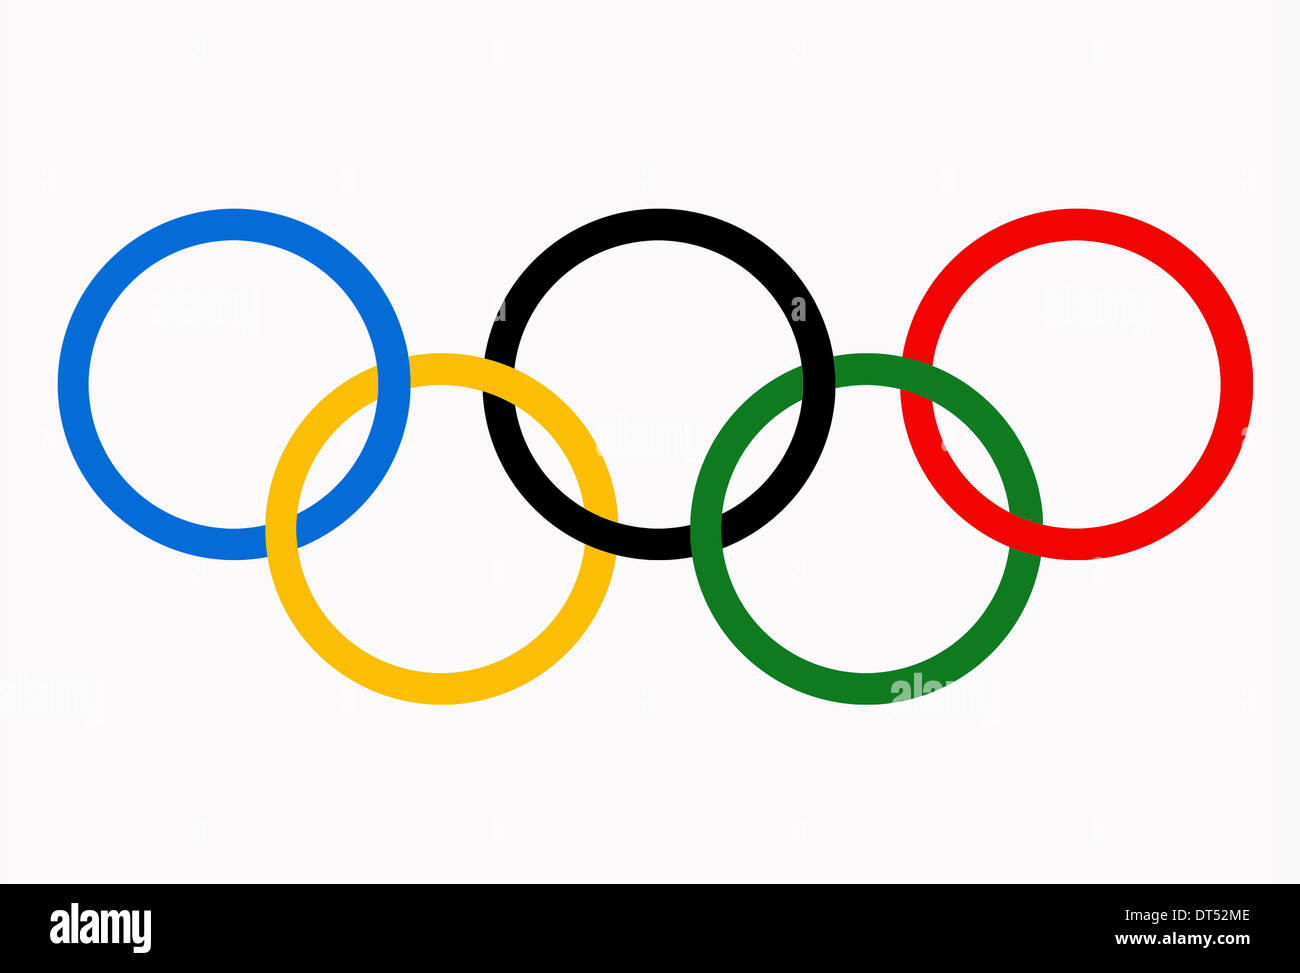 Olympic Games Rings Symbol Isolated On A White Background Stock